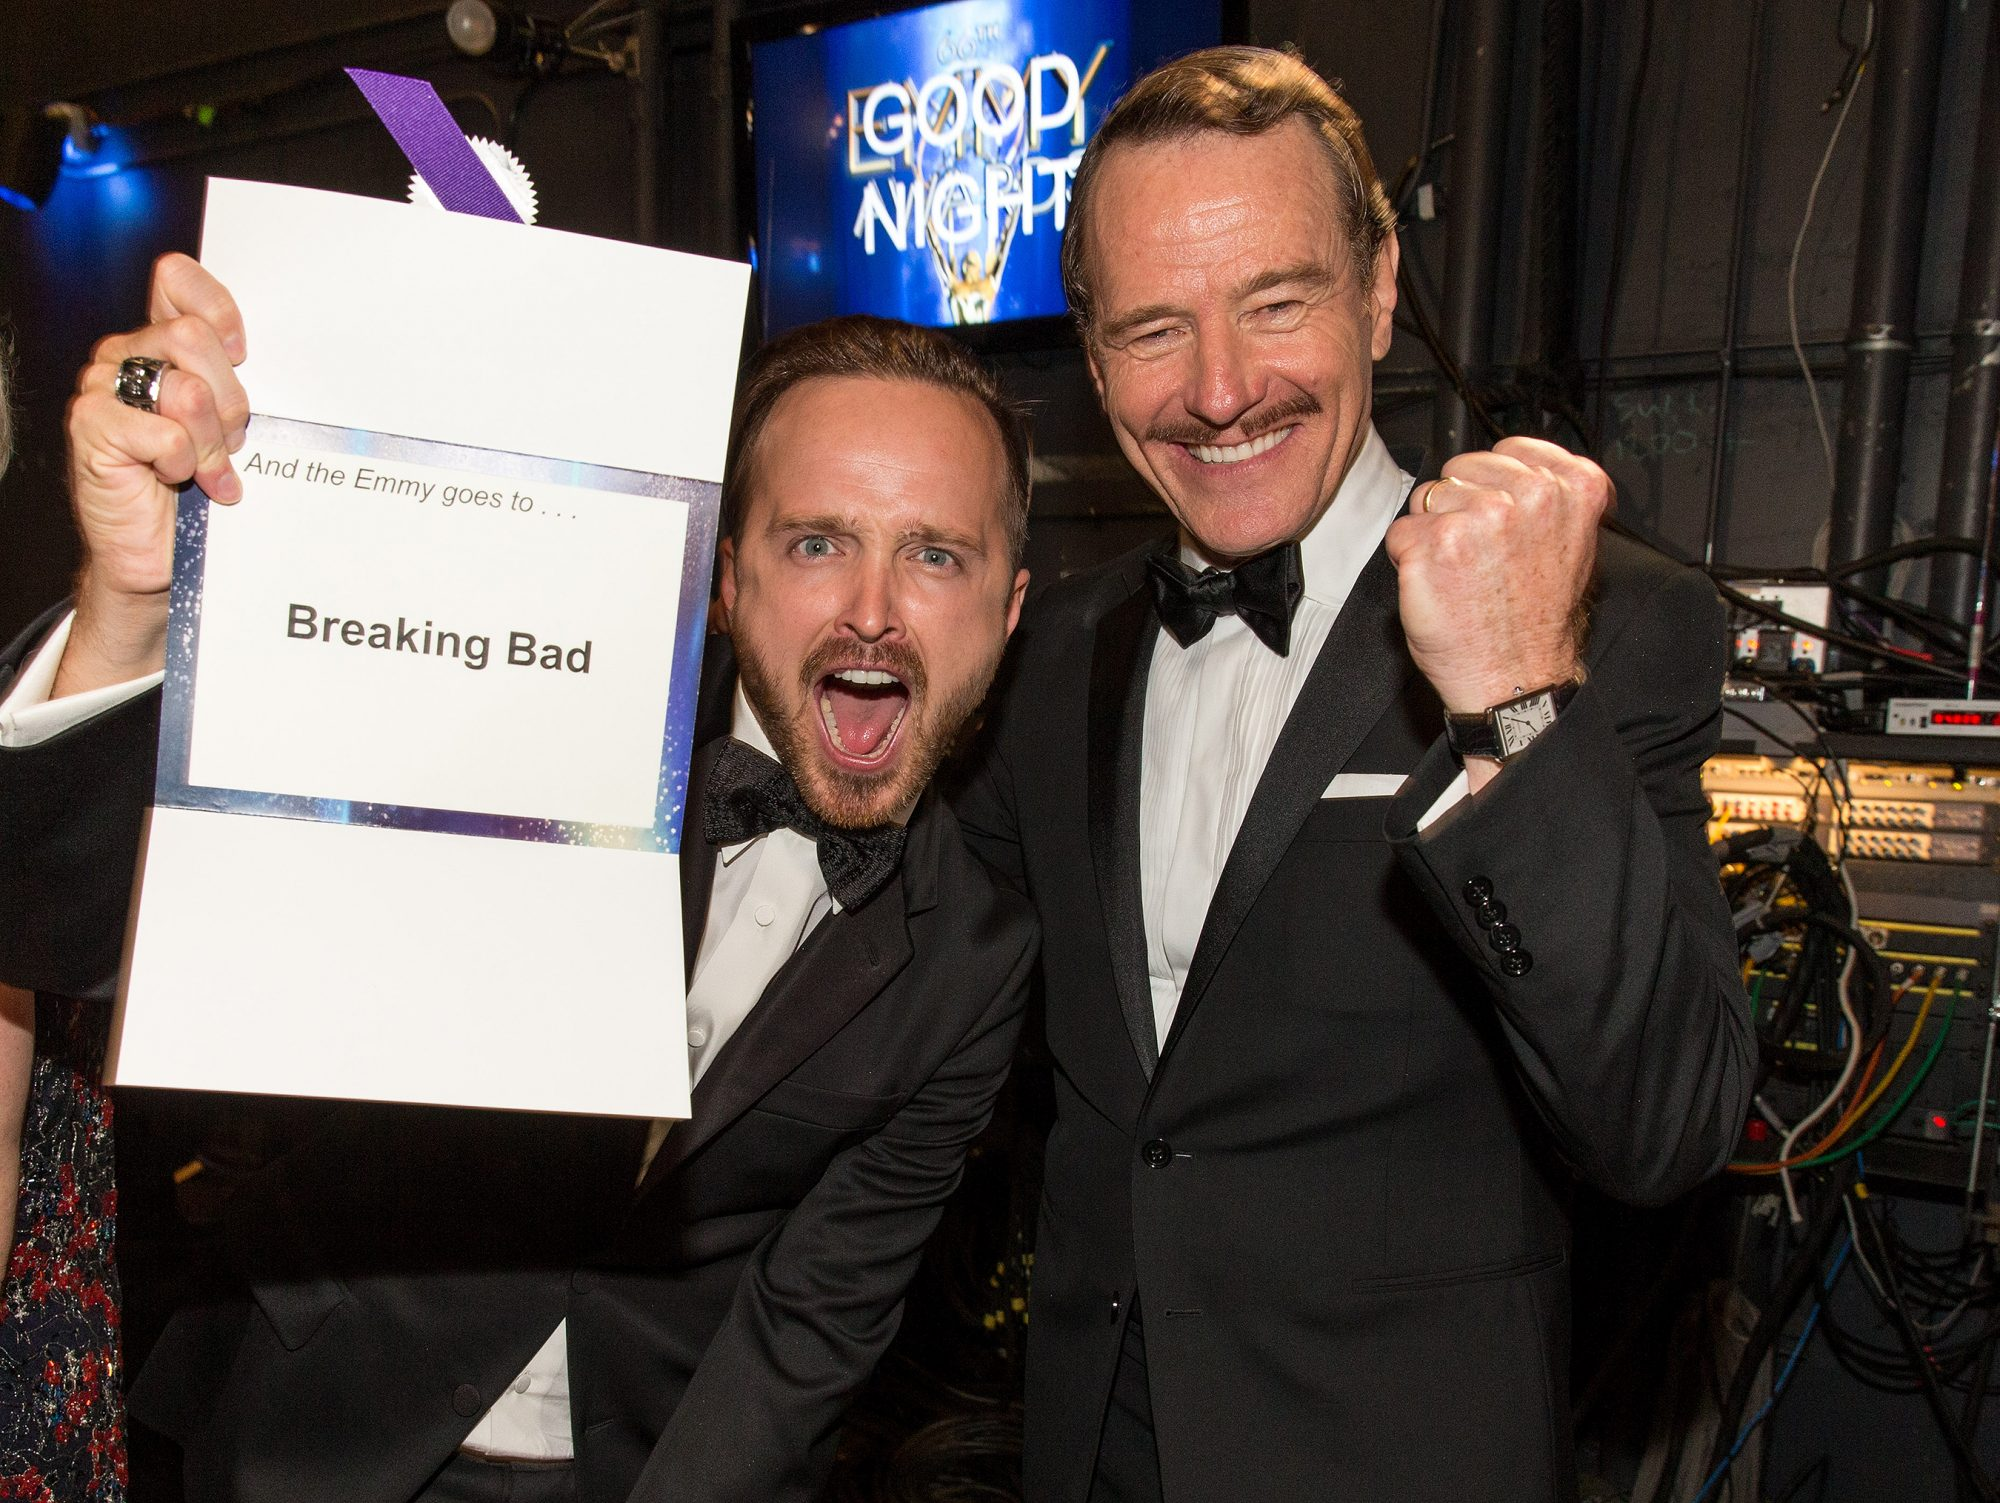 Aaron Paul Bryan Cranston friendship